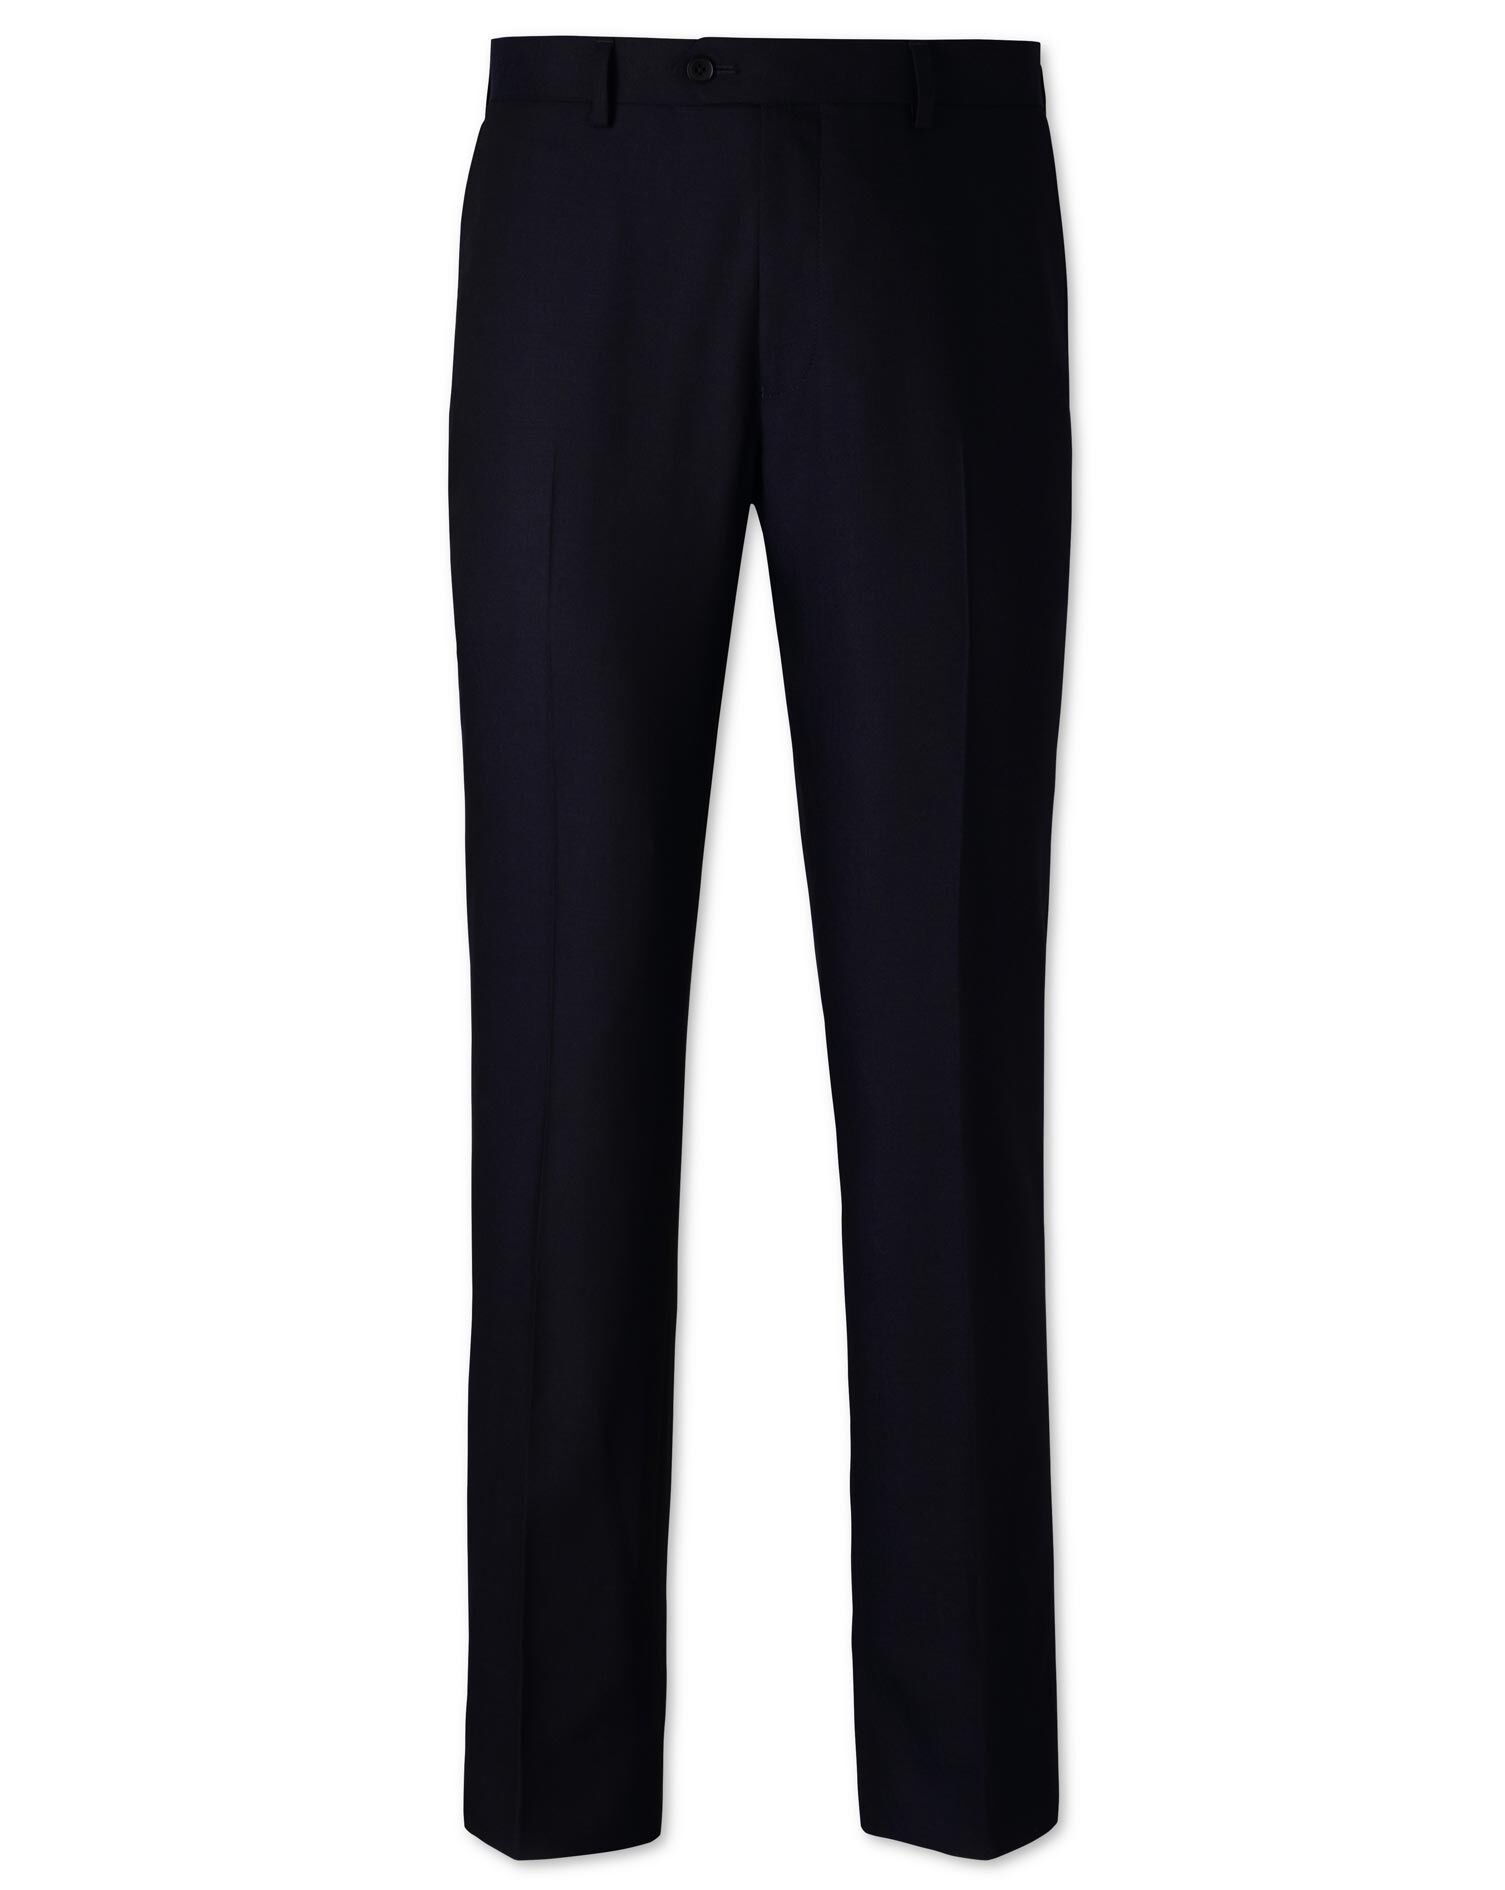 Navy Slim Fit Business Suit Trousers Size W36 L30 by Charles Tyrwhitt